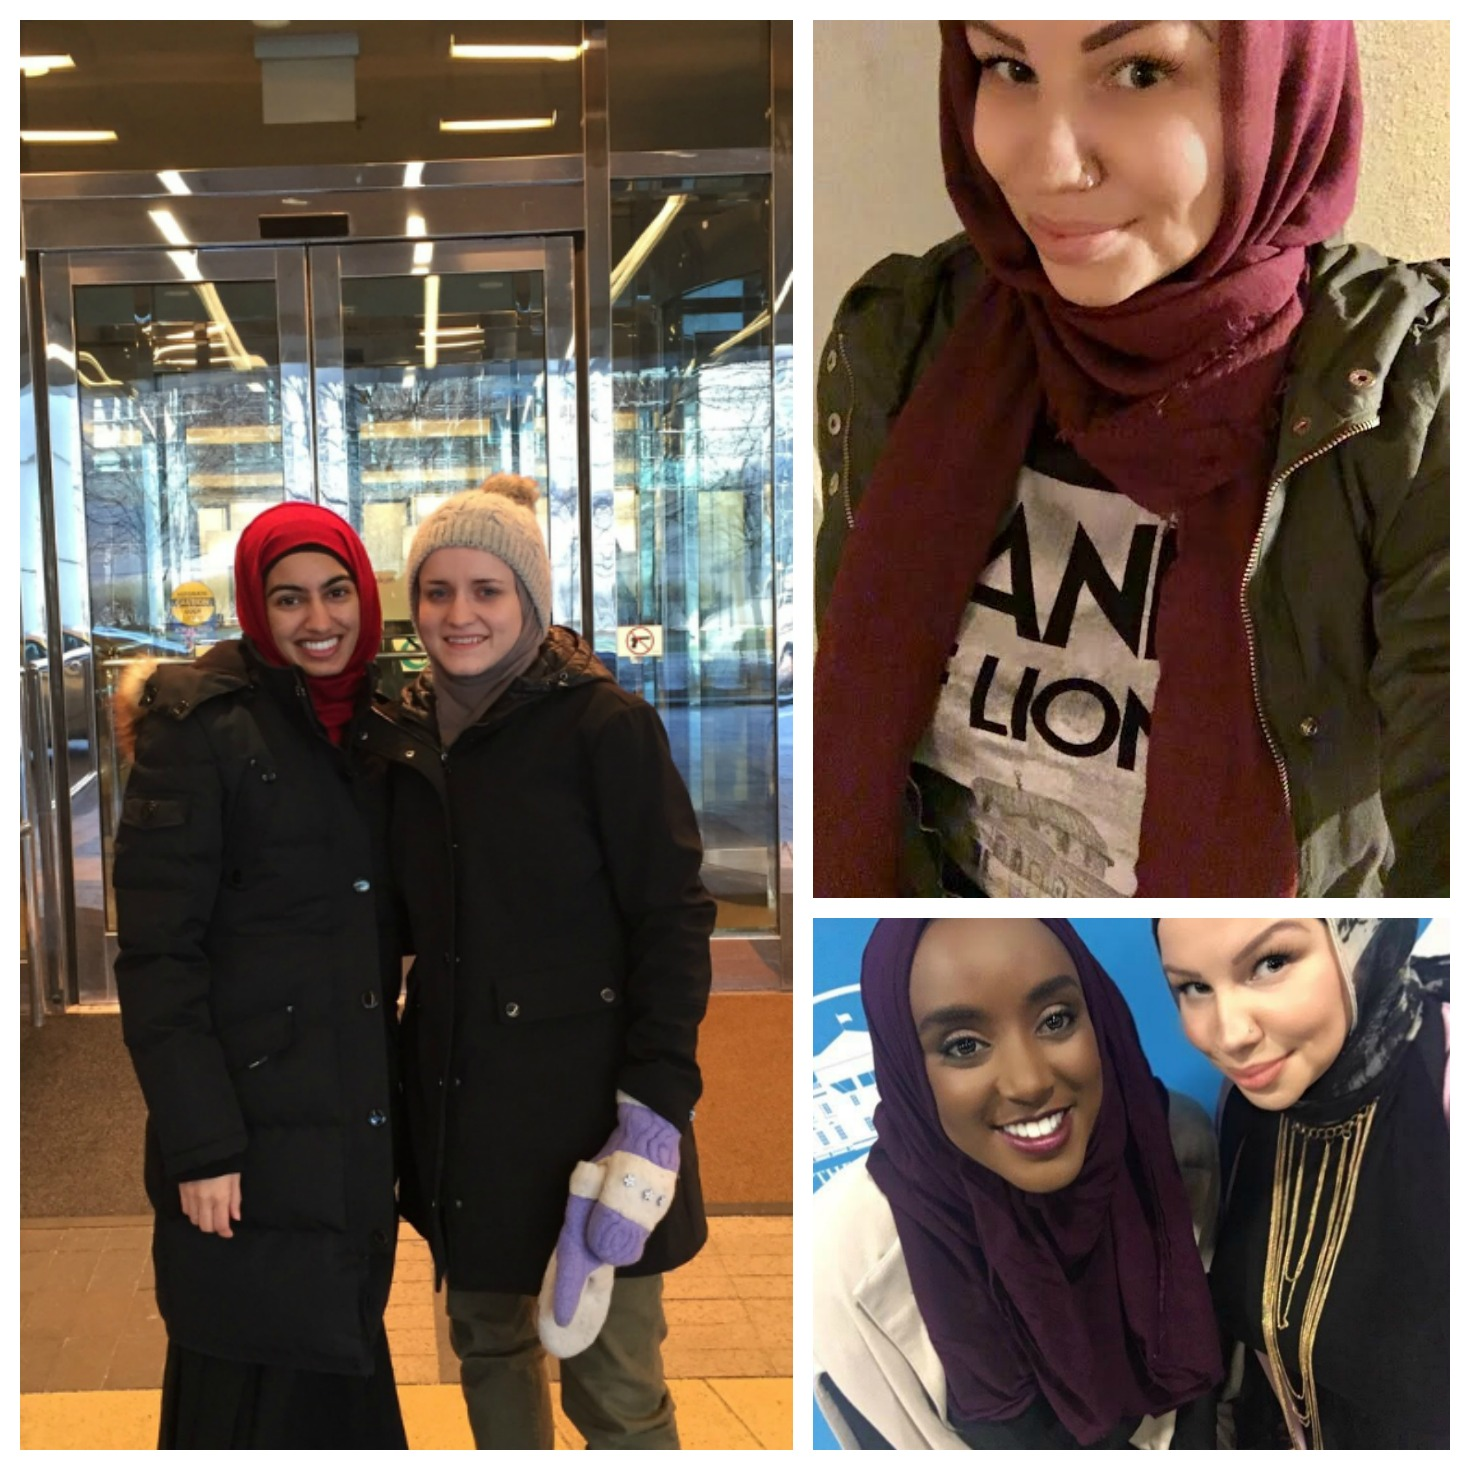 Clockwise: Bessma Khan Haider and Kaya Gravitter at MASICNA in Chicago, December 2016; Azmia Magane; Eman Bare and Azmia Magane at the White House Summit on Women, June 2016, Washington D.C.